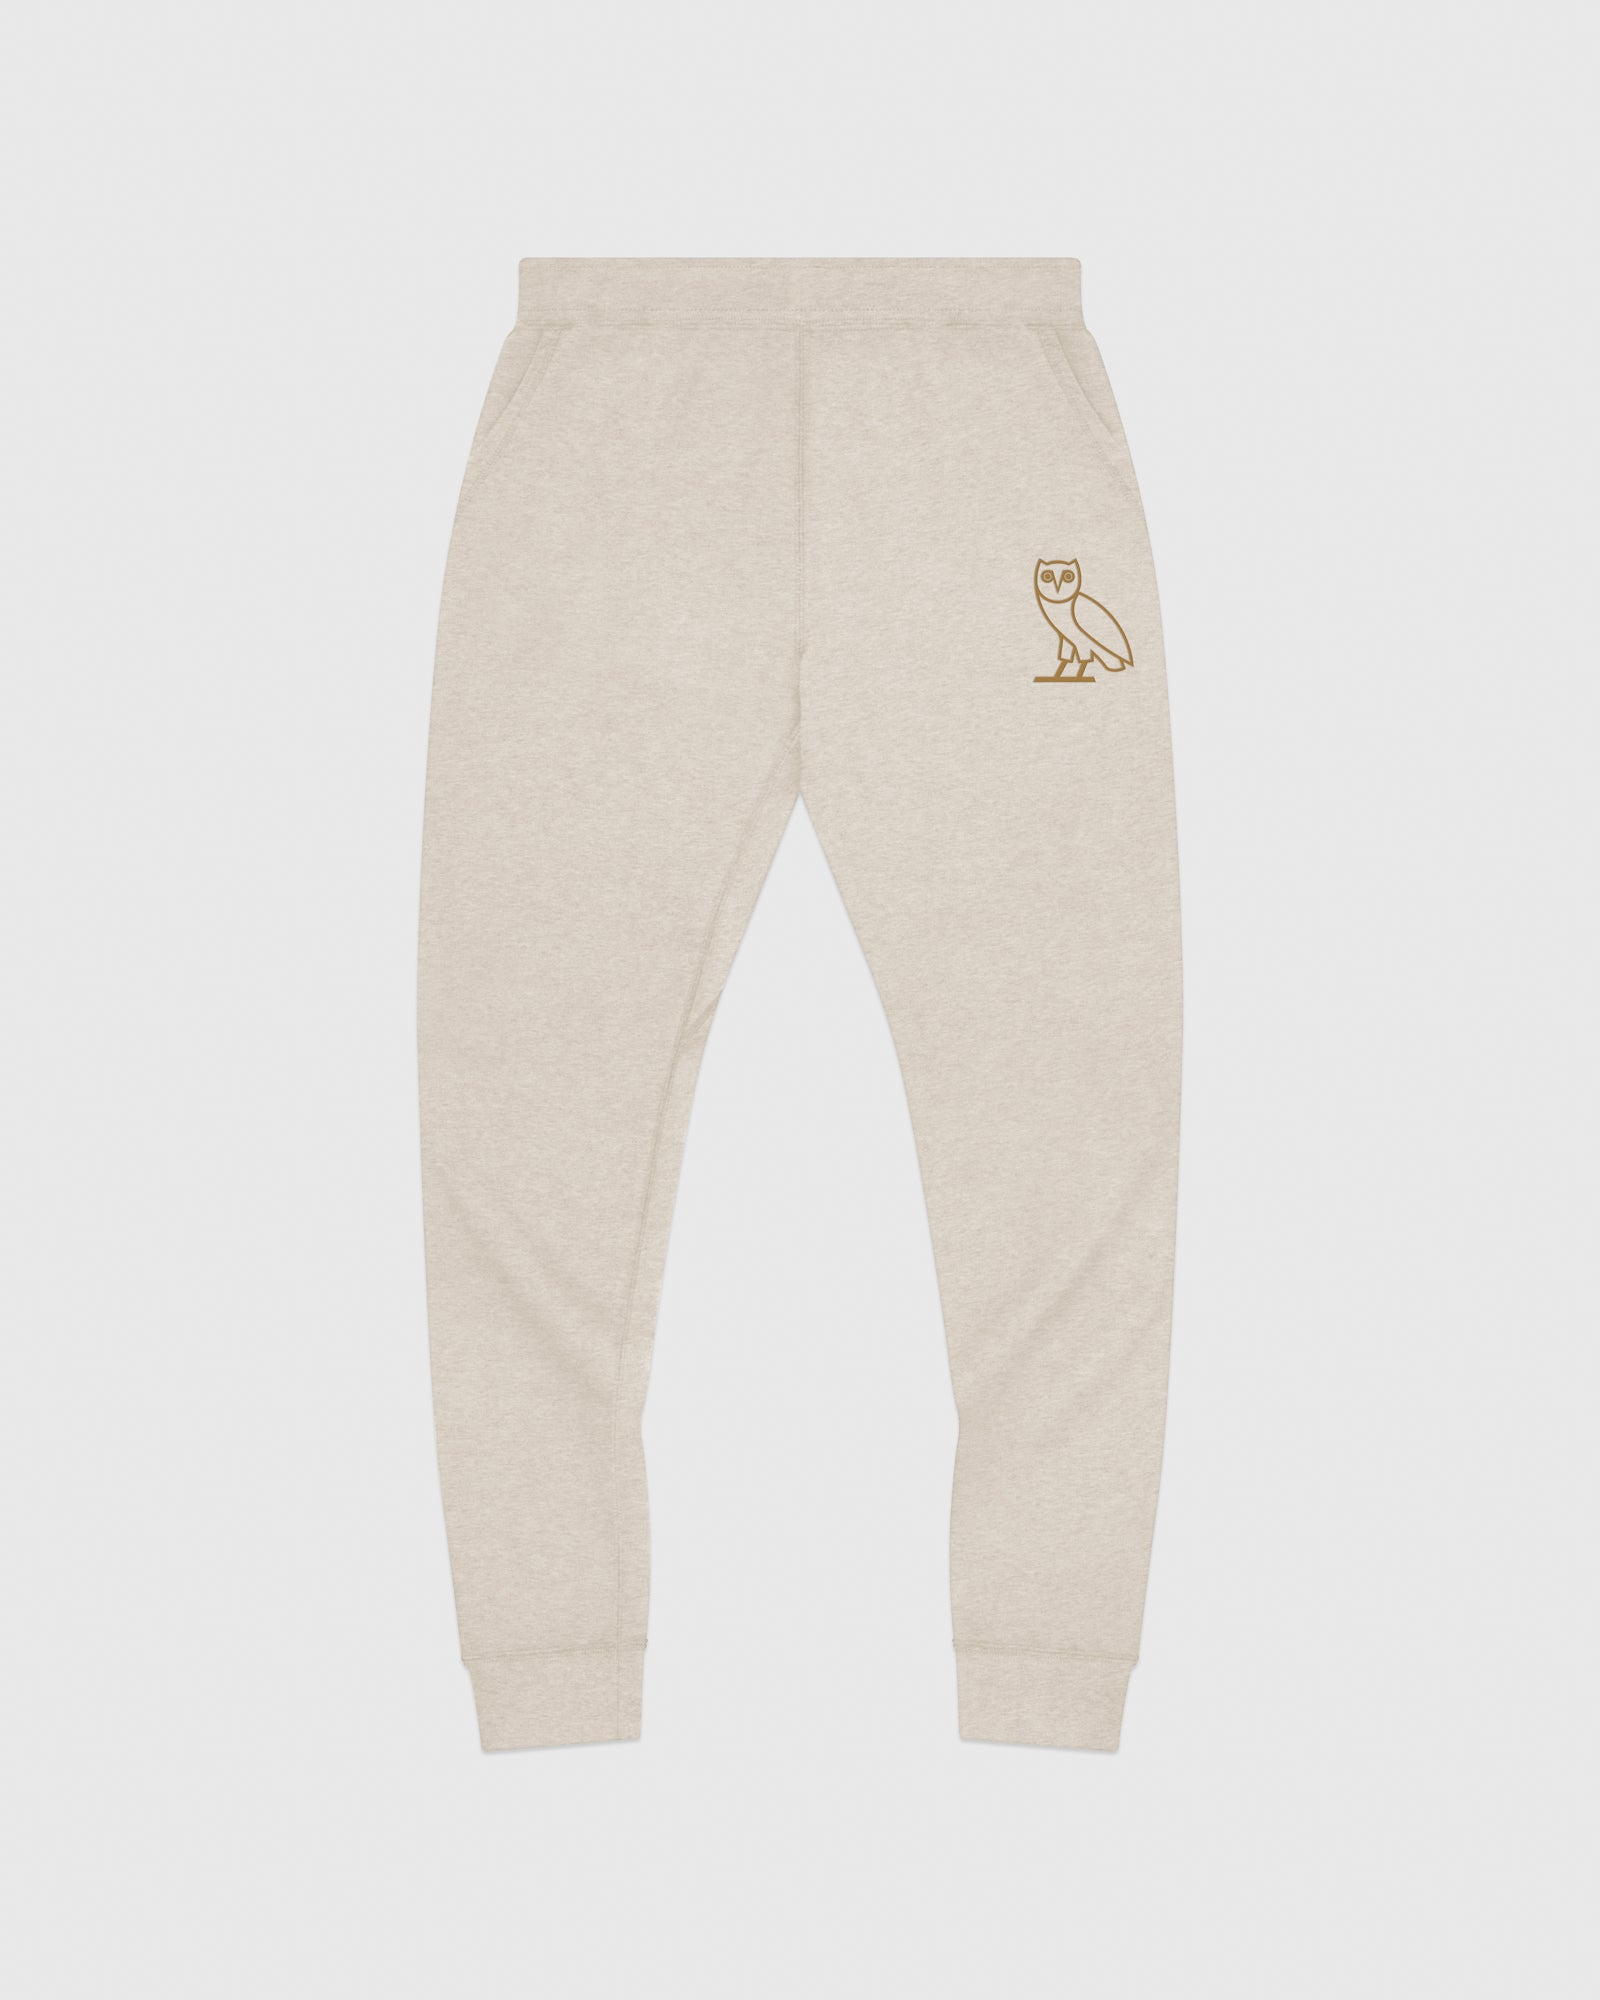 OWL SWEATPANT - HEATHER OATMEAL IMAGE #1